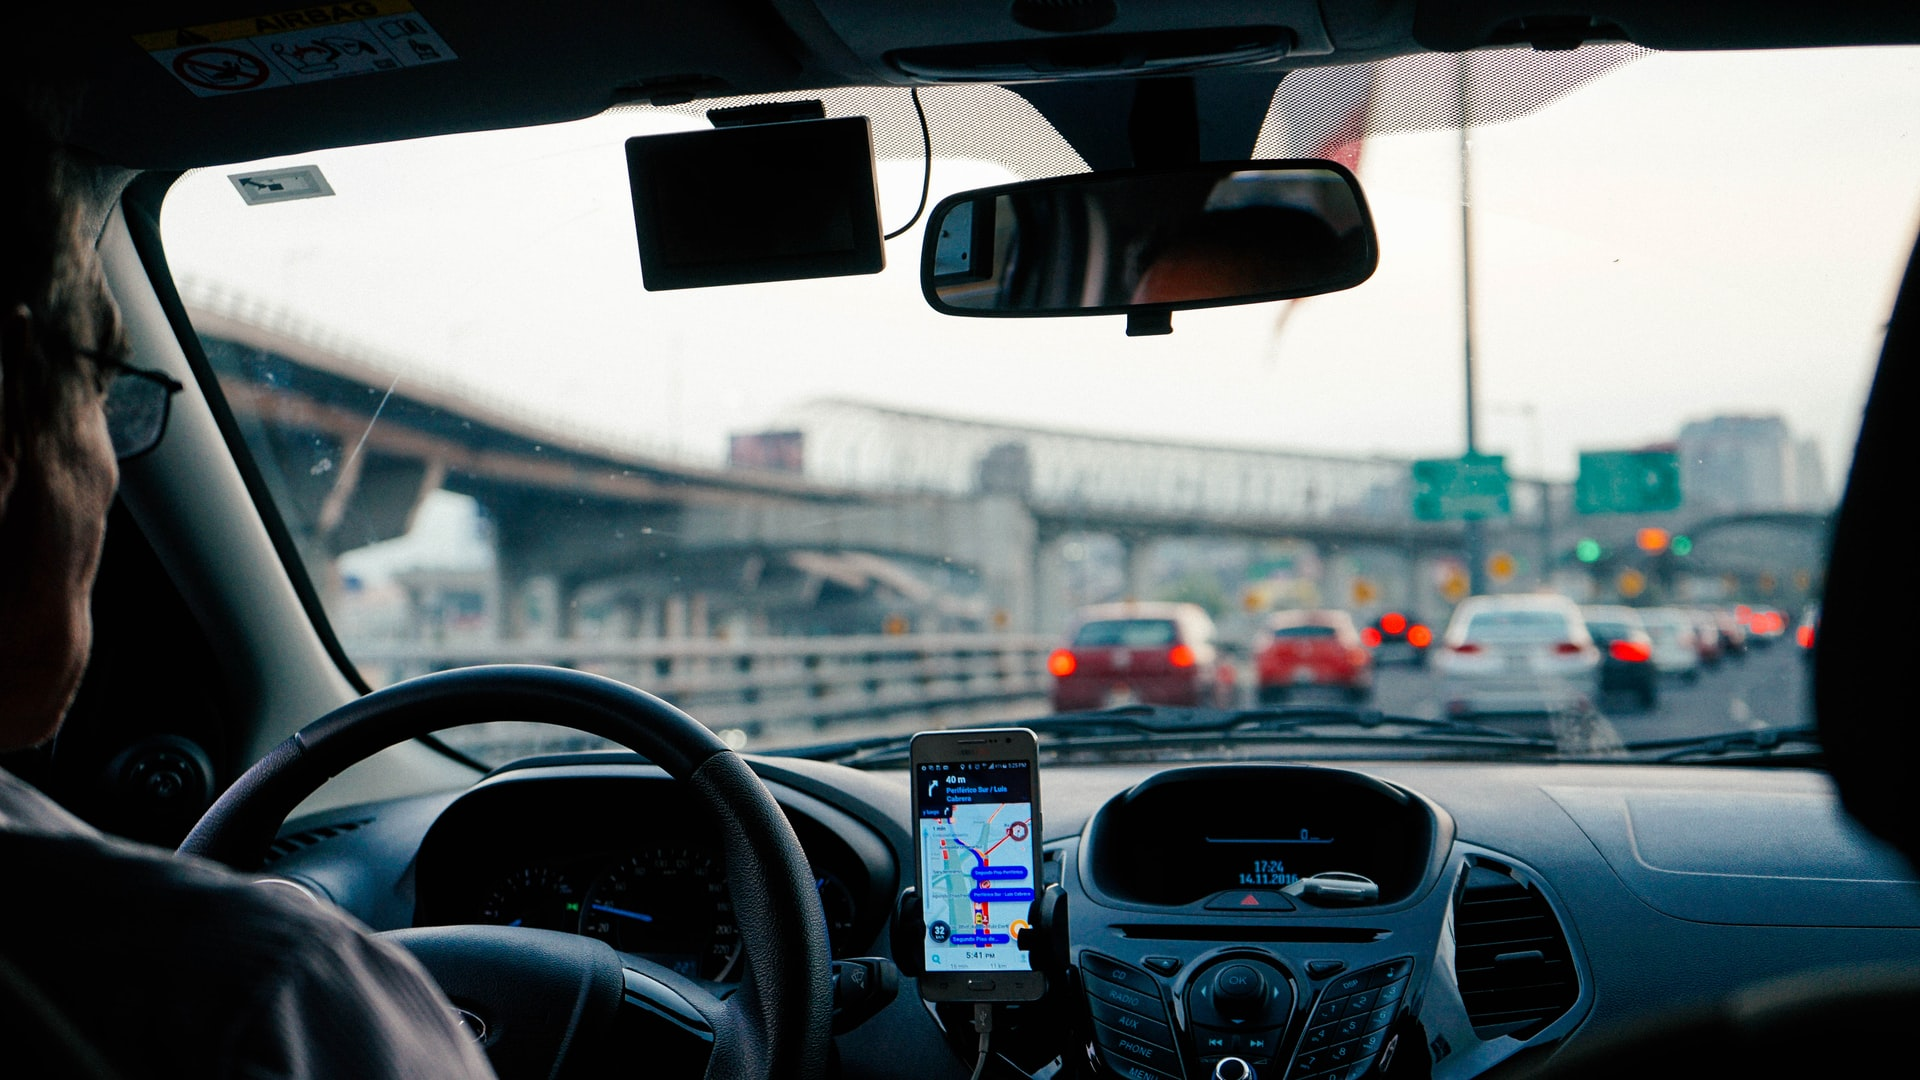 Why did Uber become so popular?, The Manc